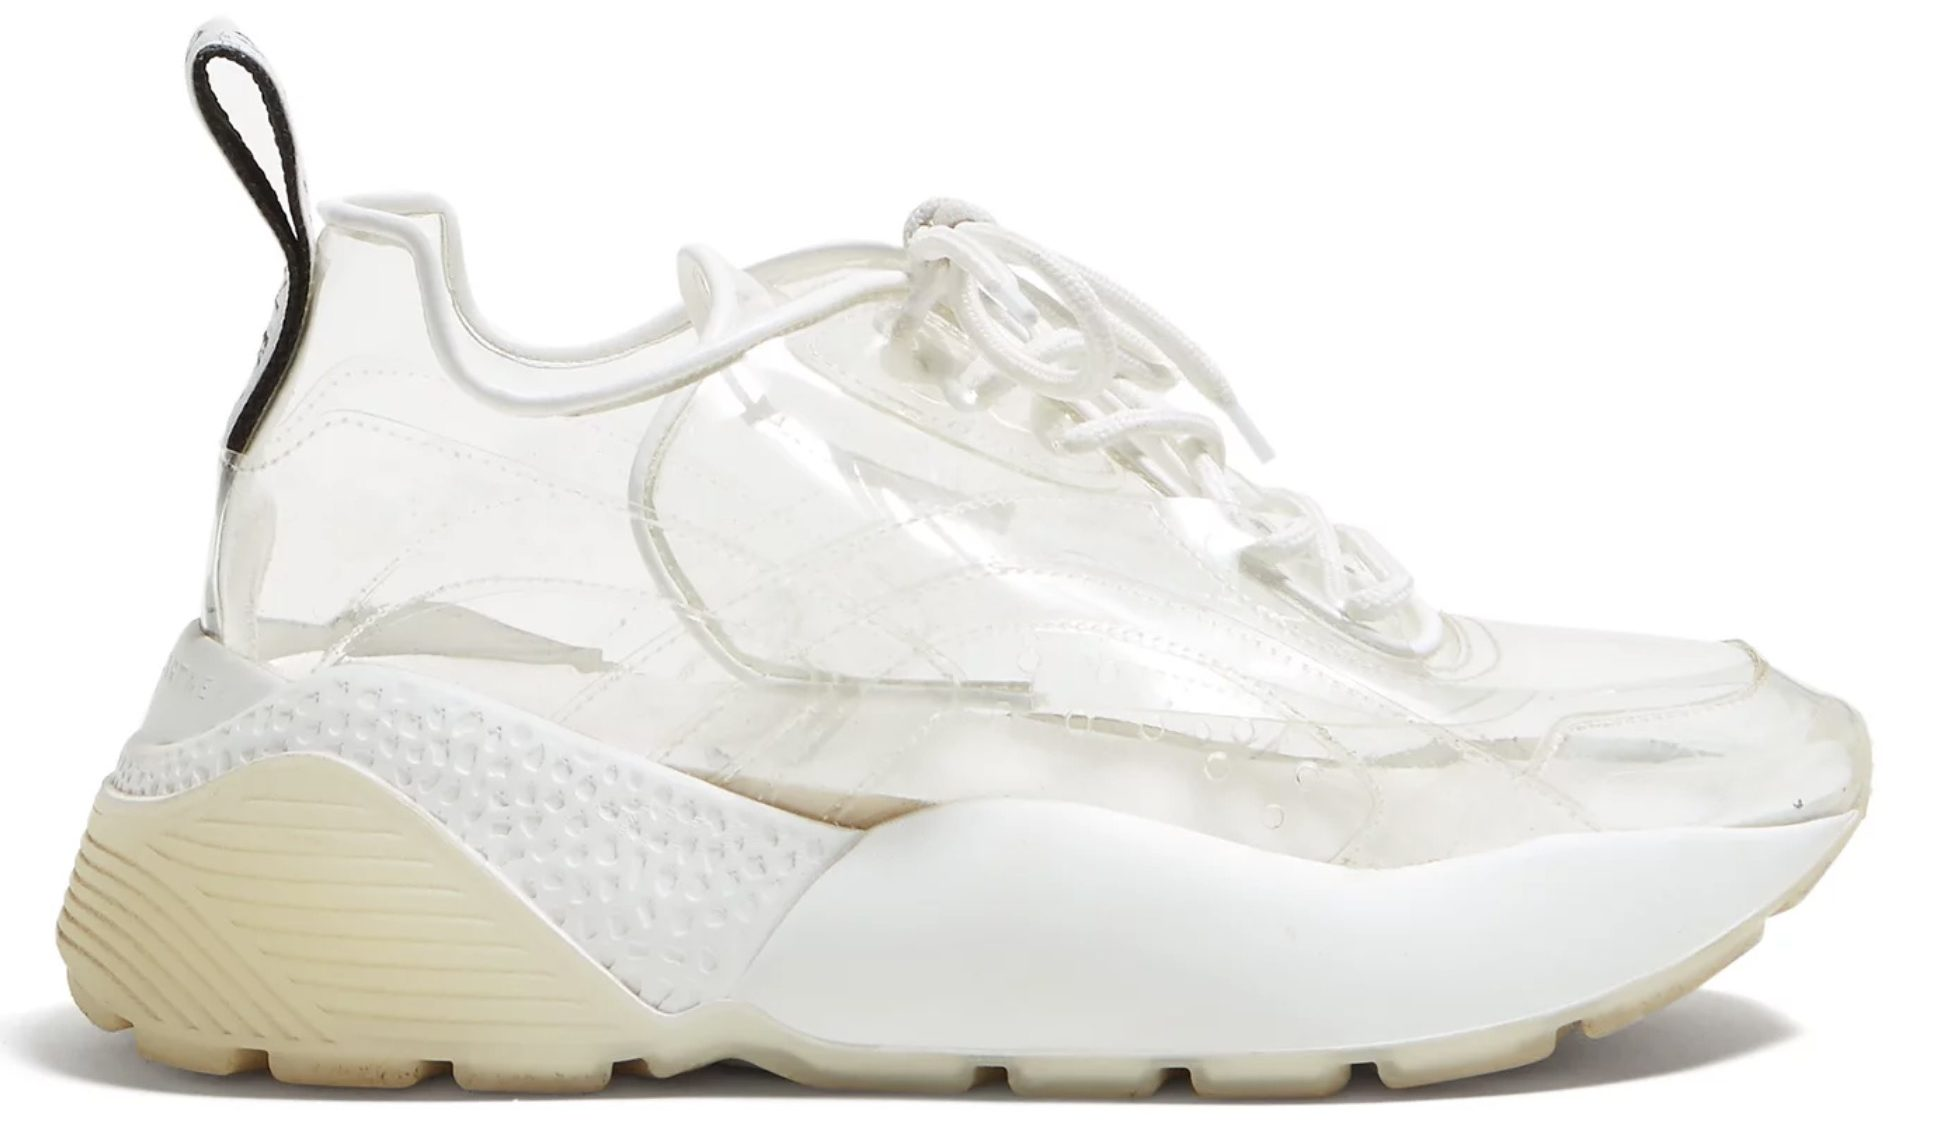 Stella McCartney's PVC Eclypse Sneakers Are A Sight To See